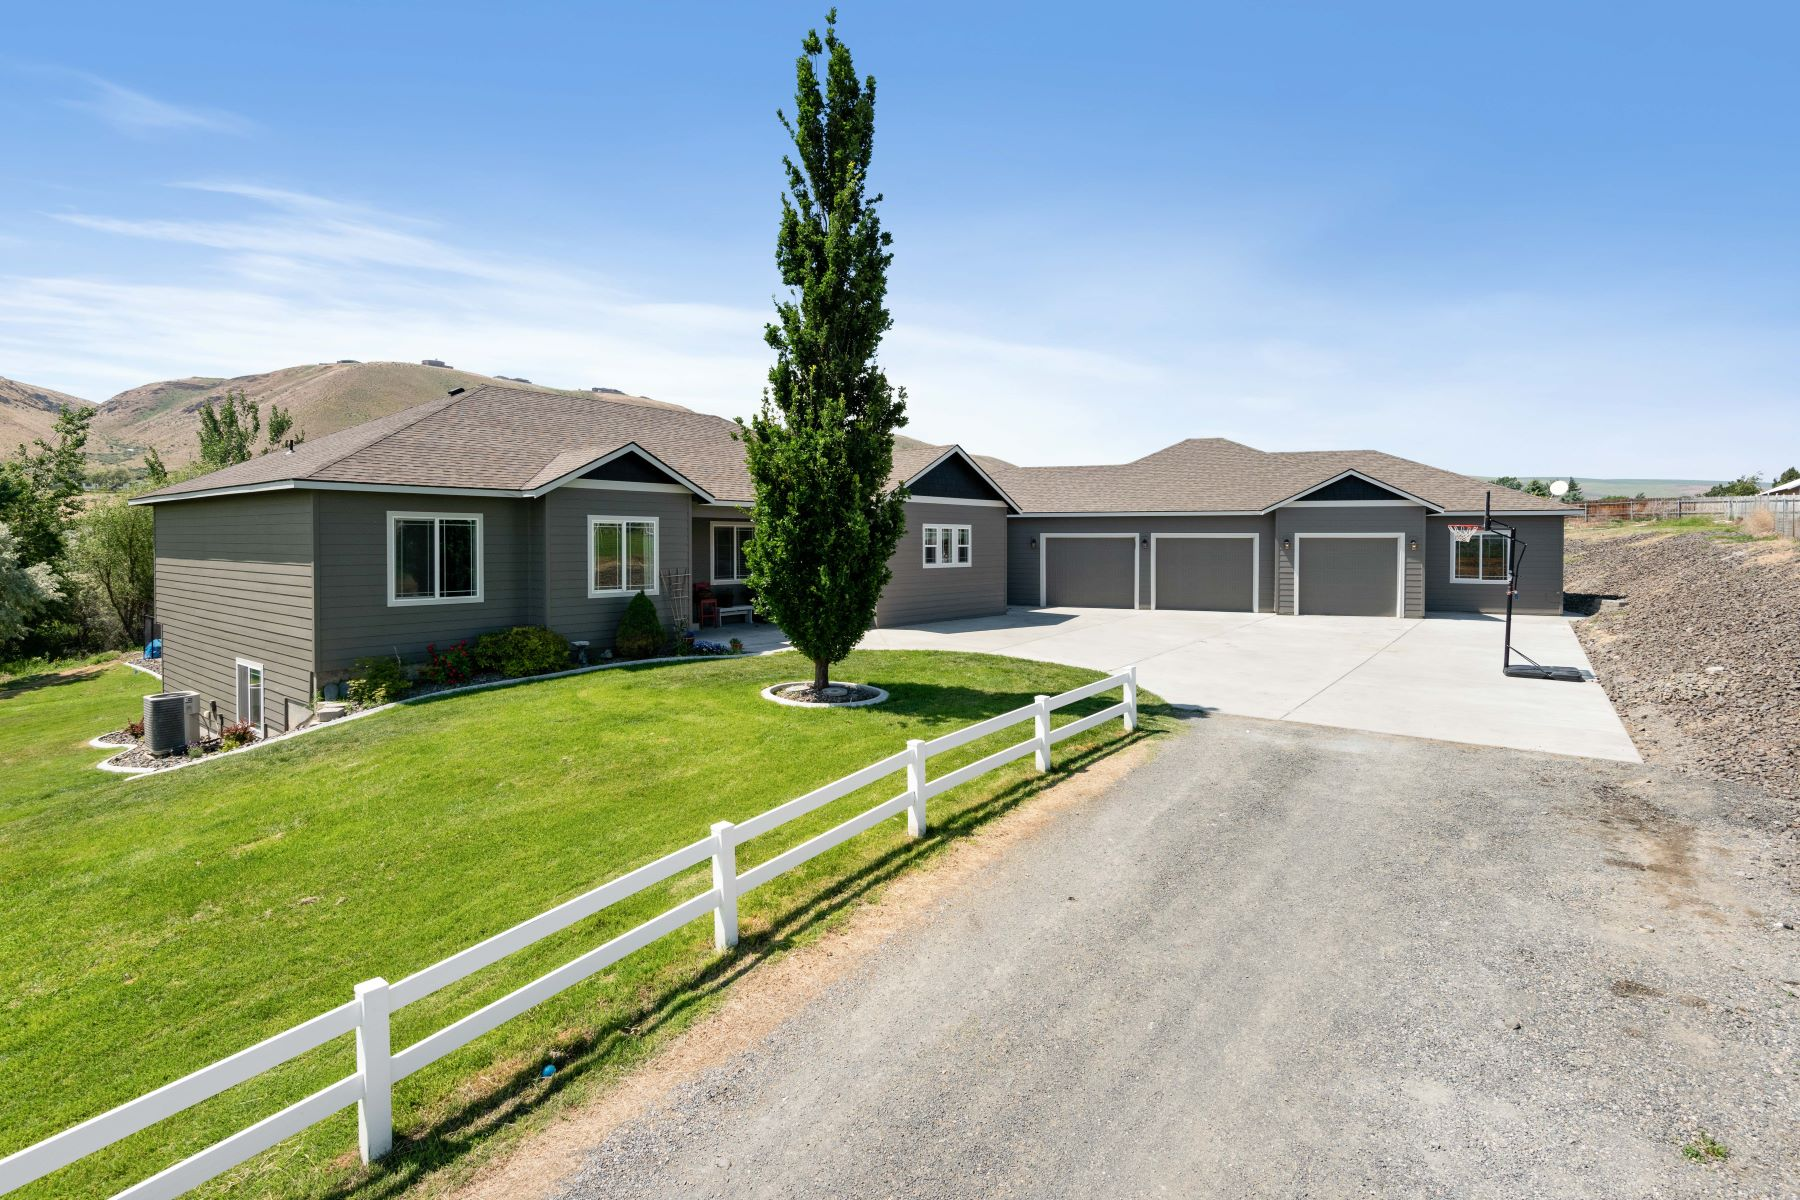 Single Family Homes for Sale at Wow! Acreage, Horse Property, In Law Apartment, POOL! 27808 S 930 PRSE Kennewick, Washington 99338 United States